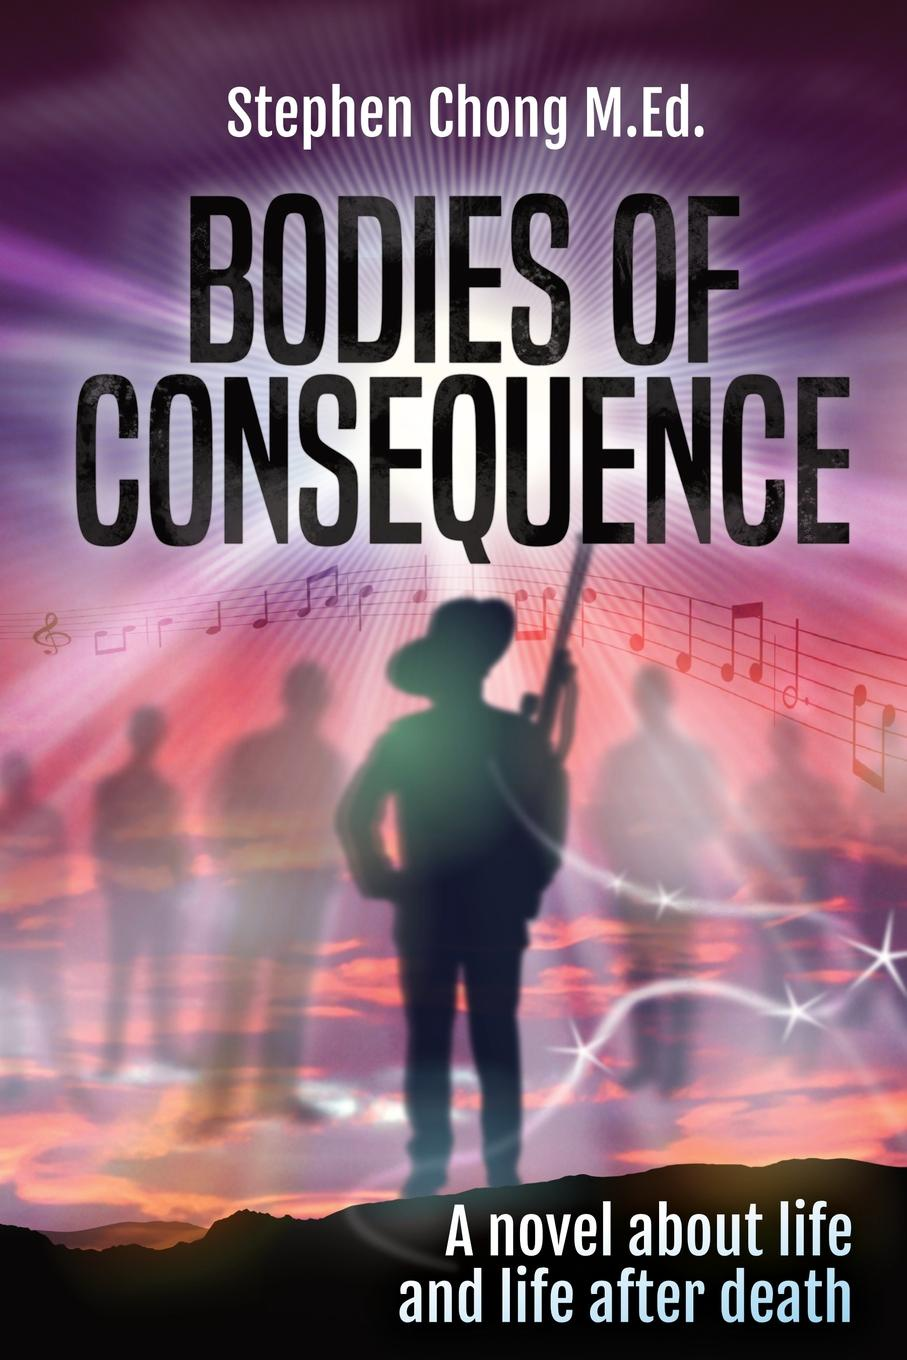 Stephen Chong Bodies of Consequence helen dickson a scoundrel of consequence